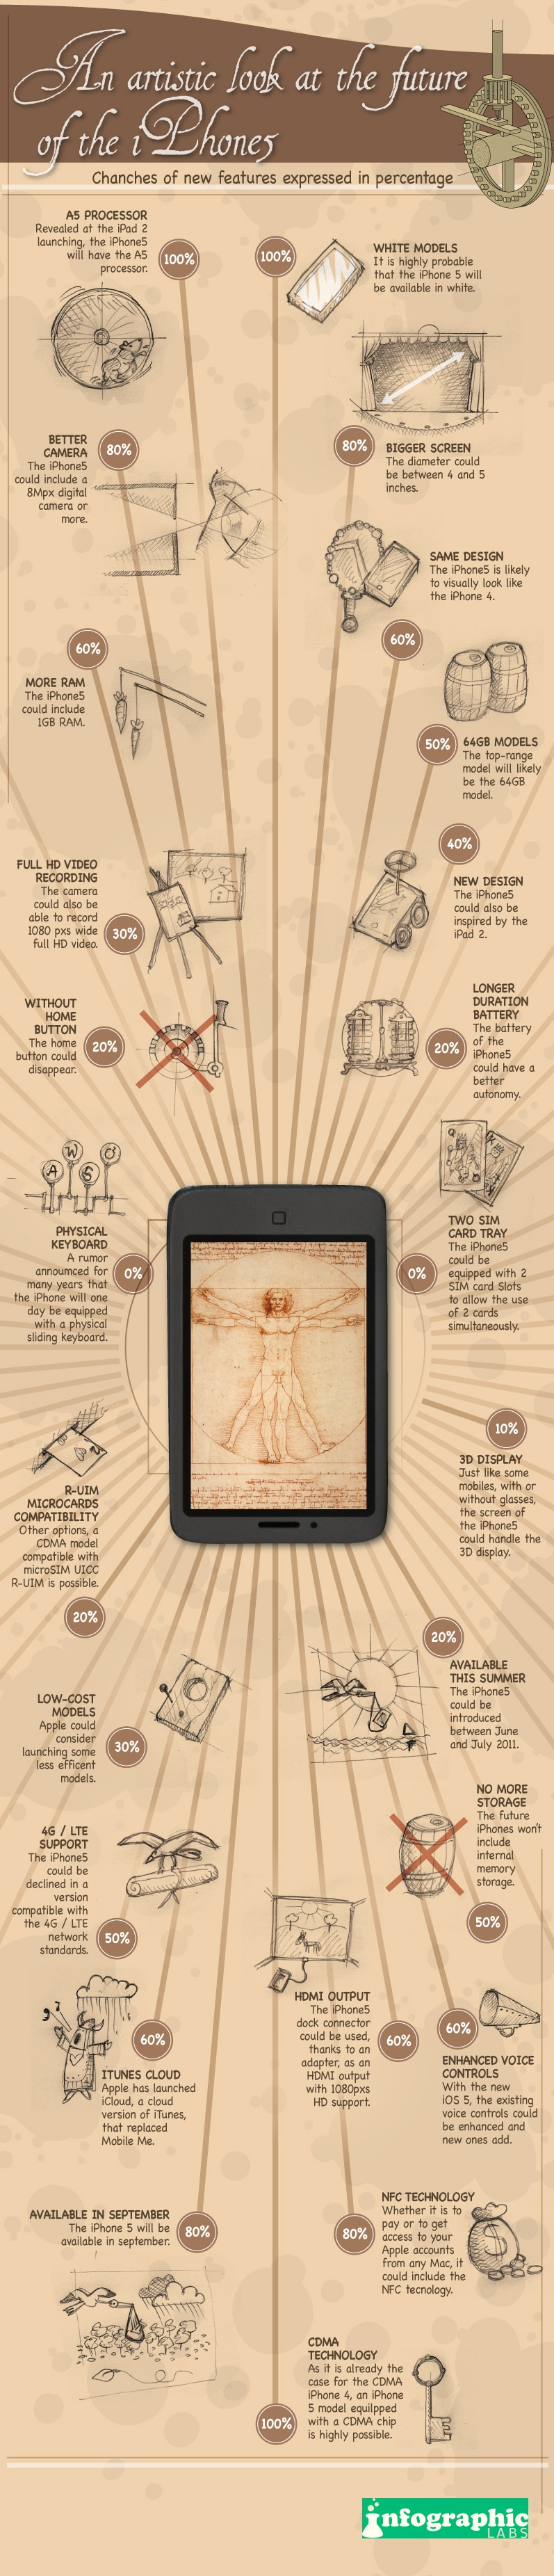 An Artistic iPhone 5 Infographic